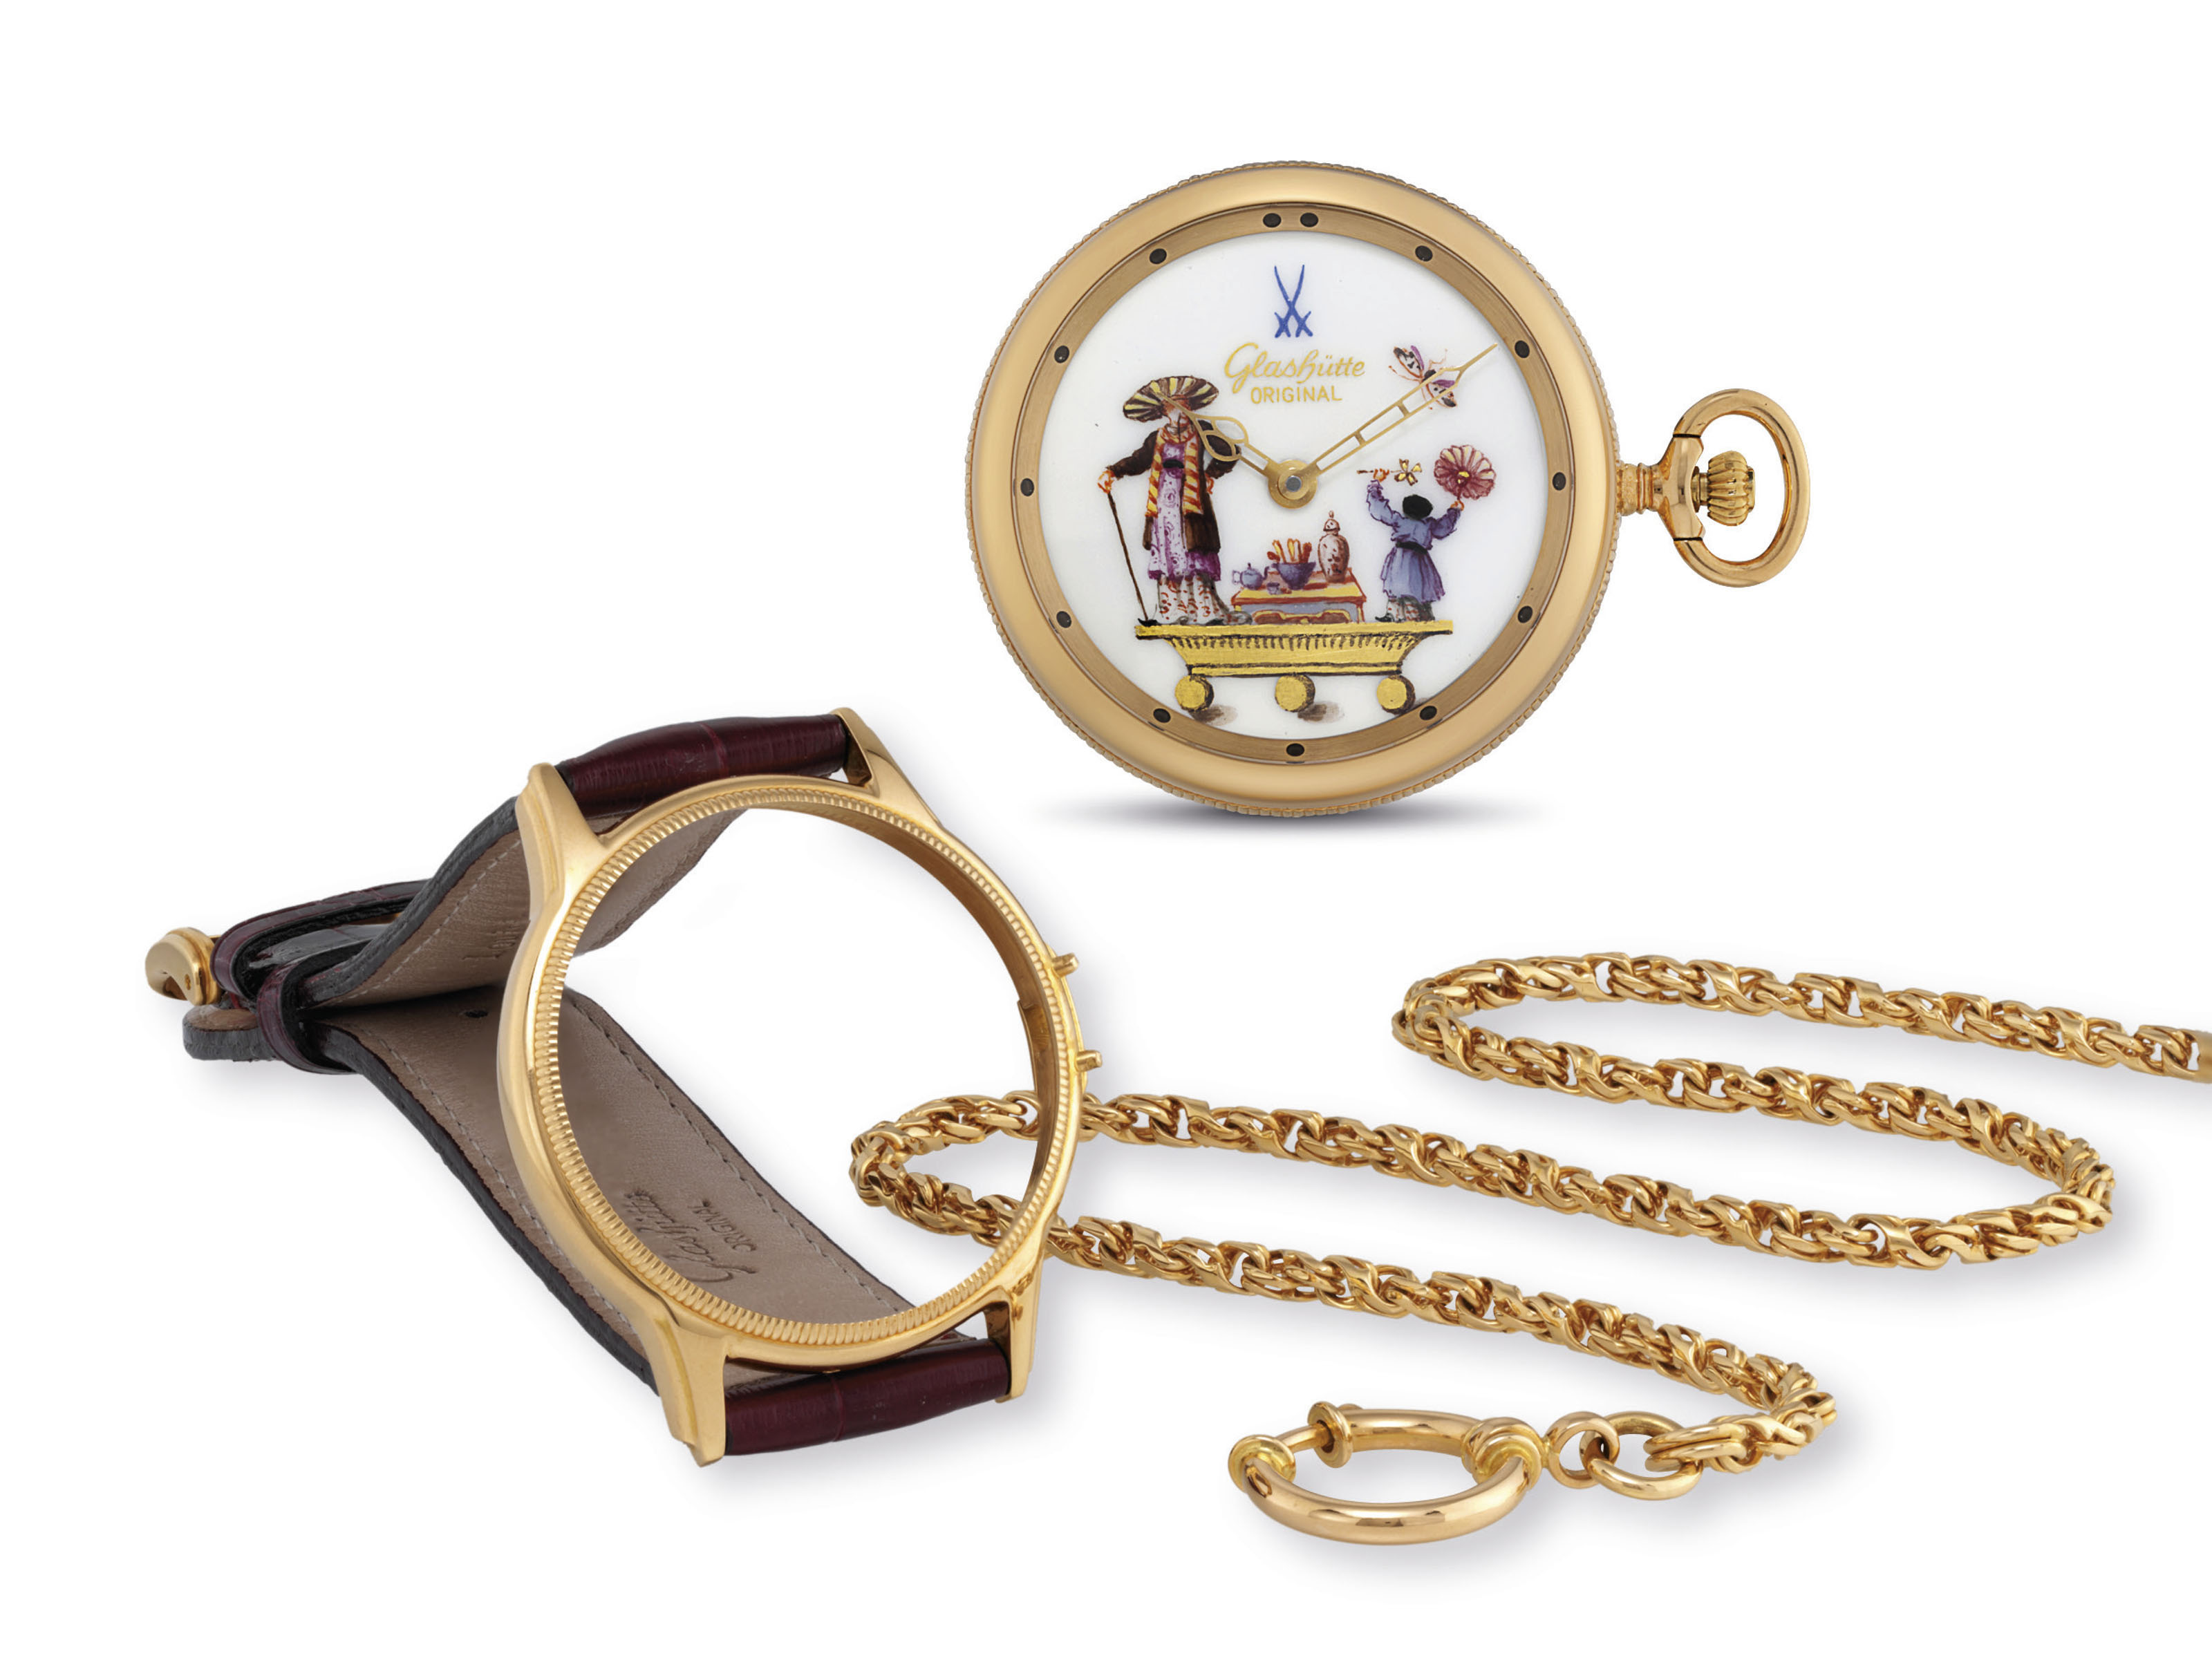 GLASHÜTTE ORIGINAL. A FINE AND RARE 18K GOLD CONVERTIBLE LIMITED EDITION WATCH WITH MEISSEN PORCELAIN DIAL AND WITH 18K GOLD CHAIN TO BE WORN AS WRIST OR POCKET WATCH